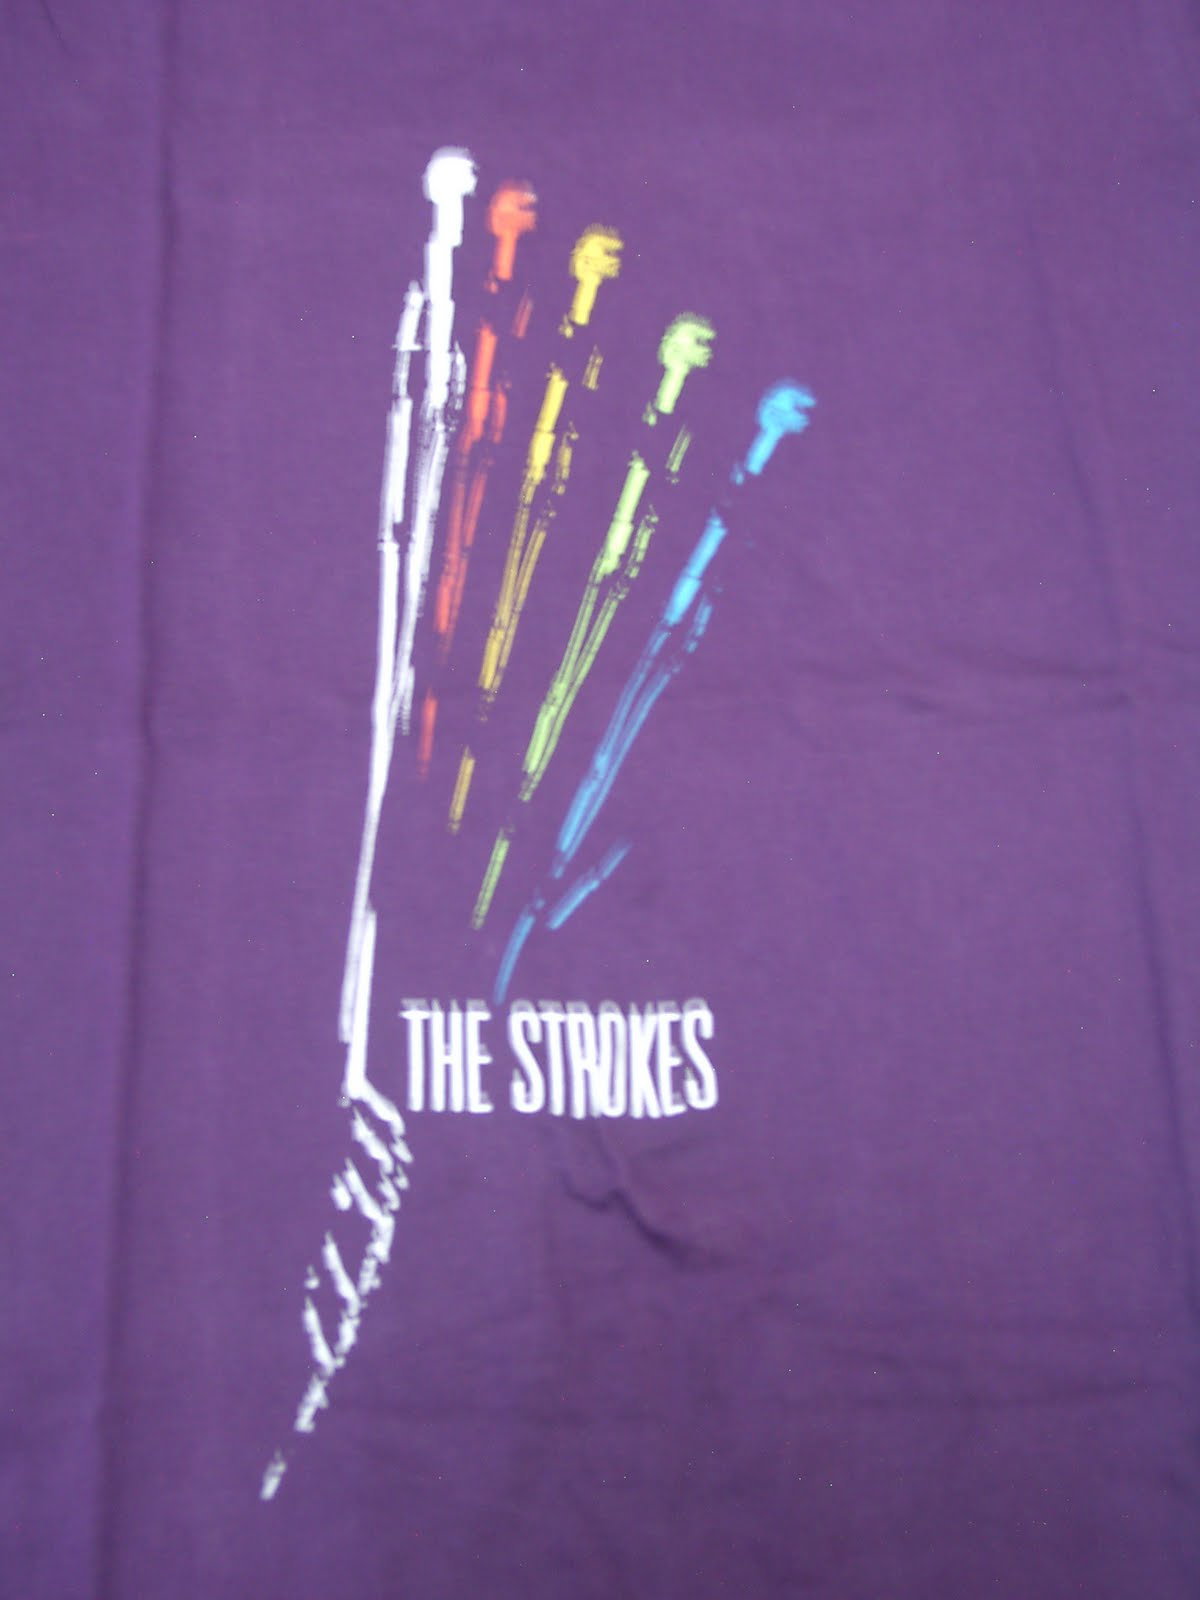 Blur SpiraL Bundle: Baju Band The Strokes